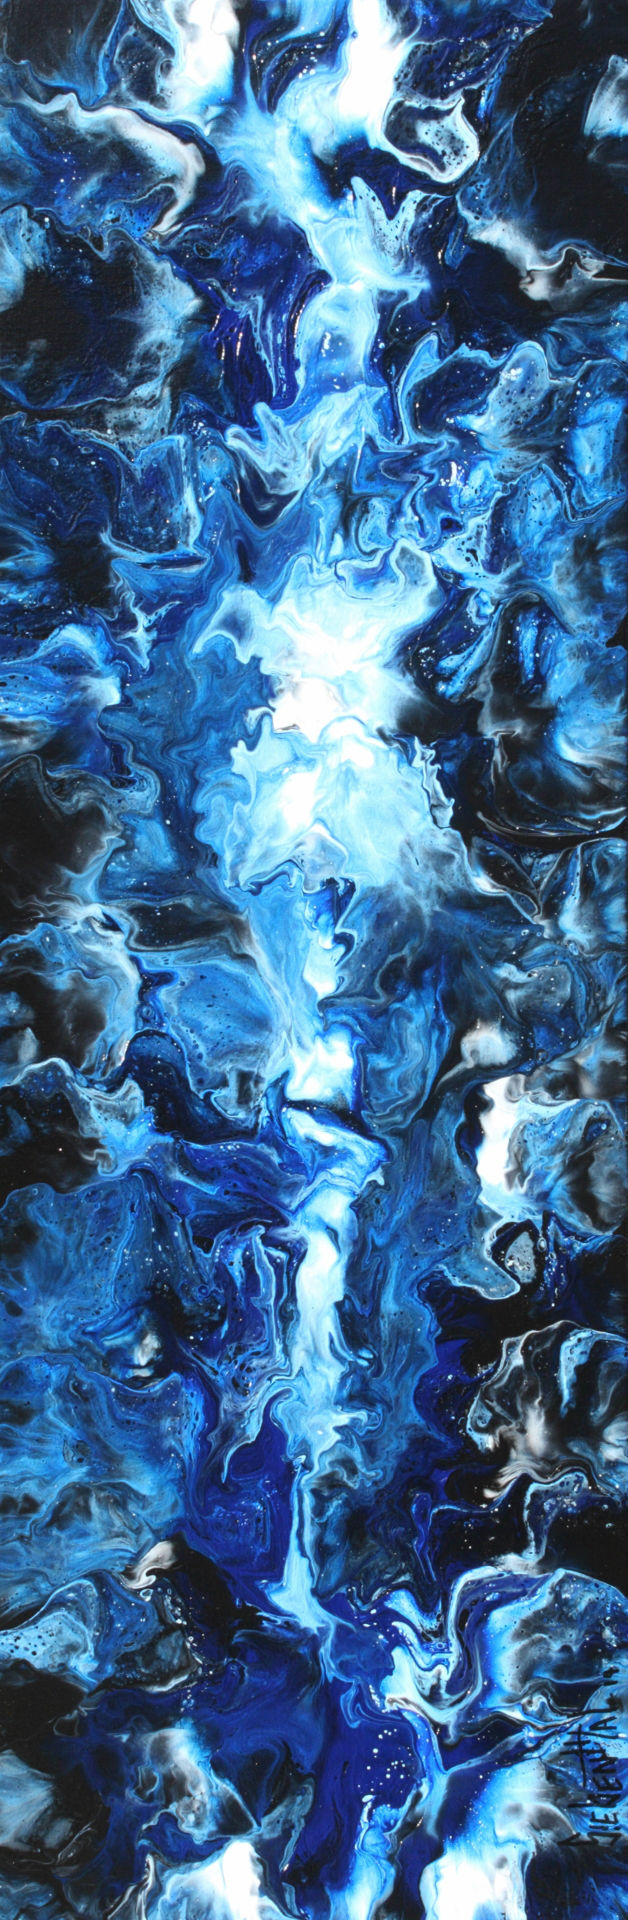 The Essence - Fluid Acrylic Art by Eric Siebenthal - Acrylicmind.com